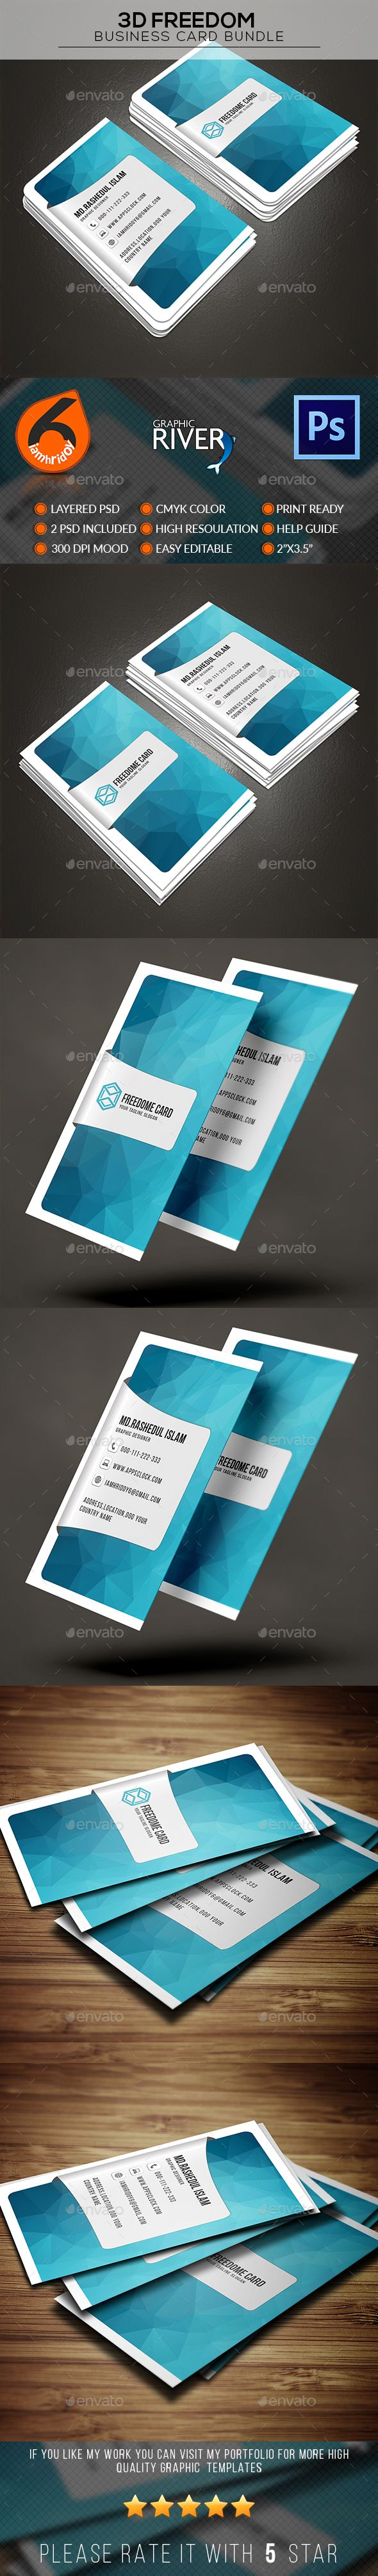 28 best business card images on pinterest